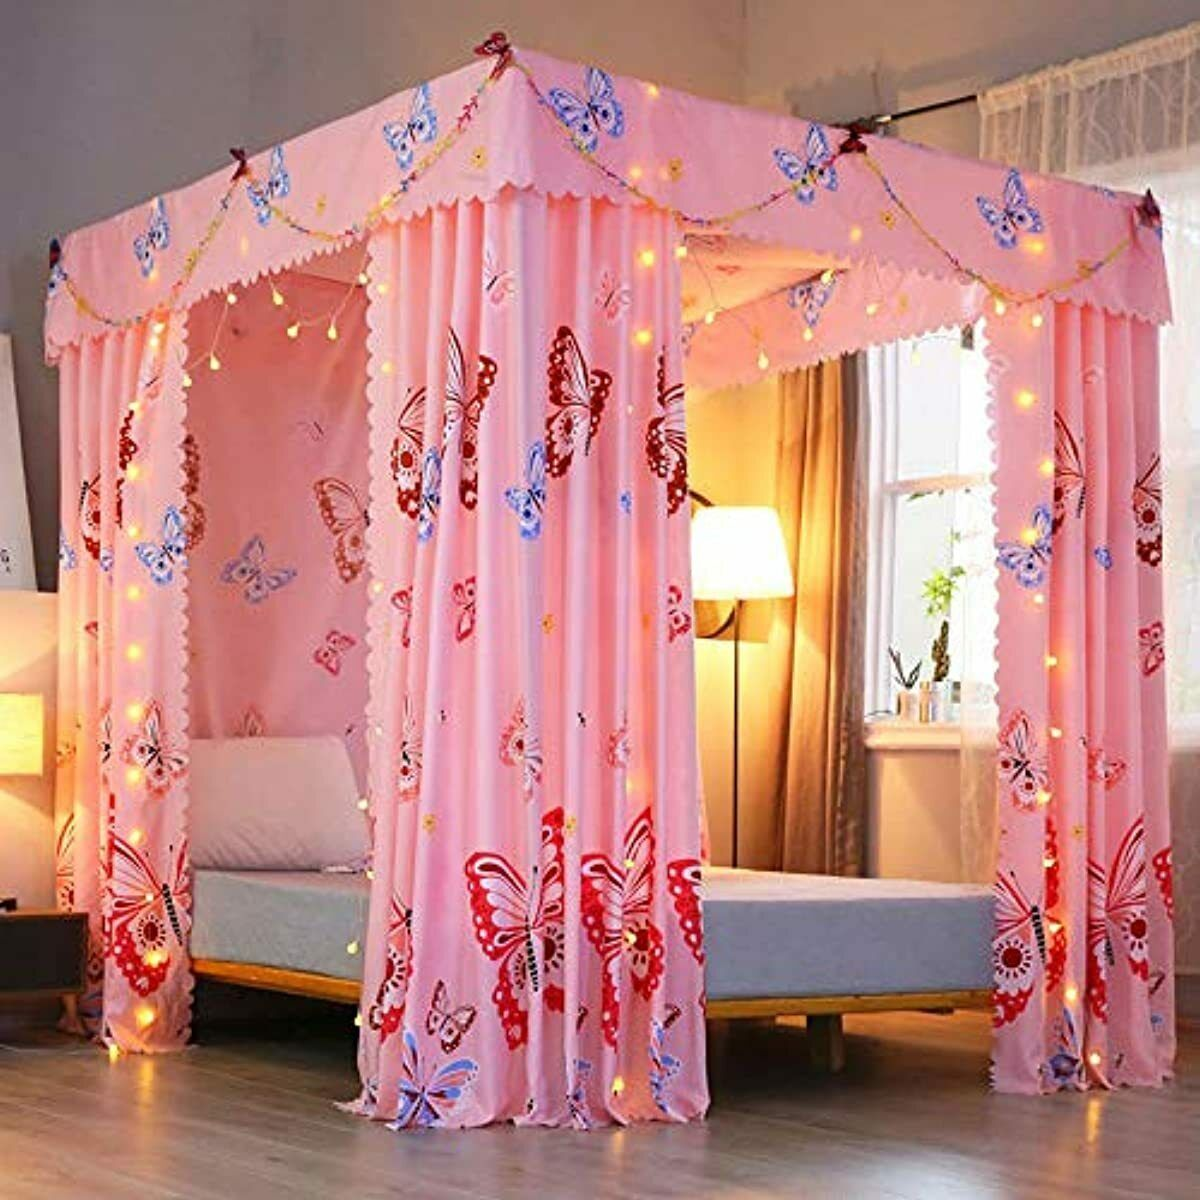 Mengersi Princess Butterfly Canopy Bed Curtains For Girls Pink Bed Drapes Curtai Ebay